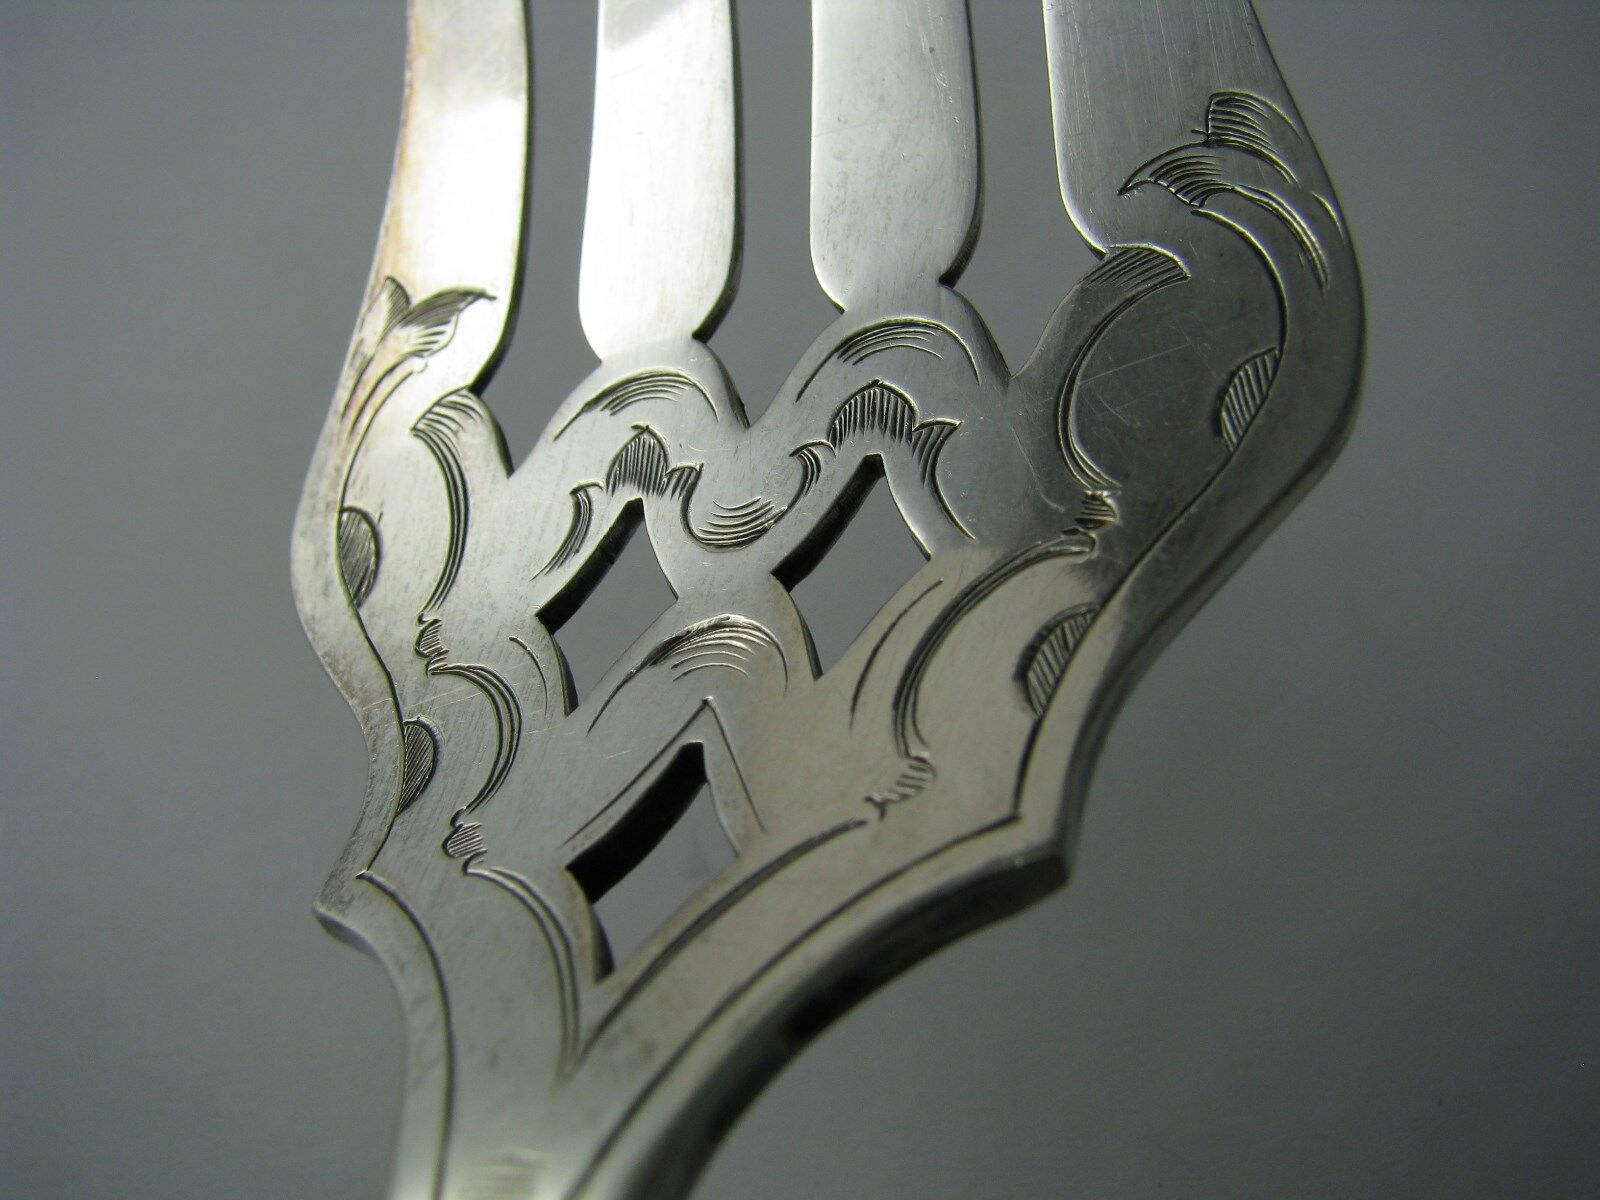 SILVER PLATED FORK FISH SERVER FIDDLE By Slack Barlow Sheffield England C1930s - $95.00